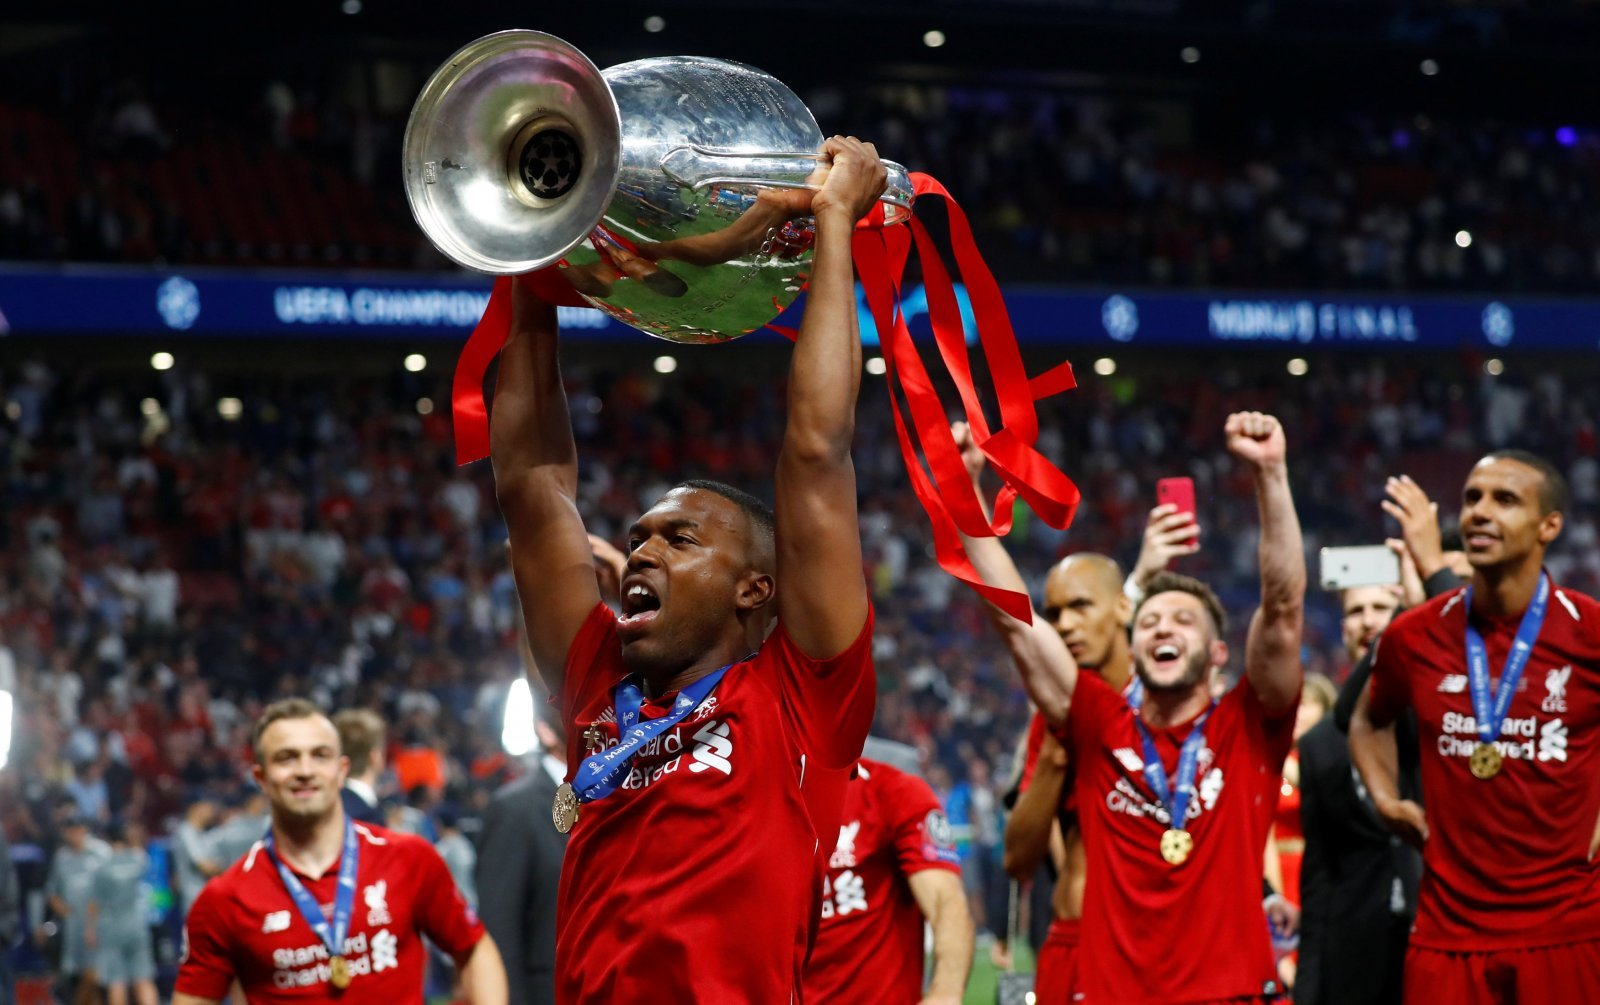 Liverpool: Daniel Sturridge, a painfully underrated Anfield hero ruined by injuries